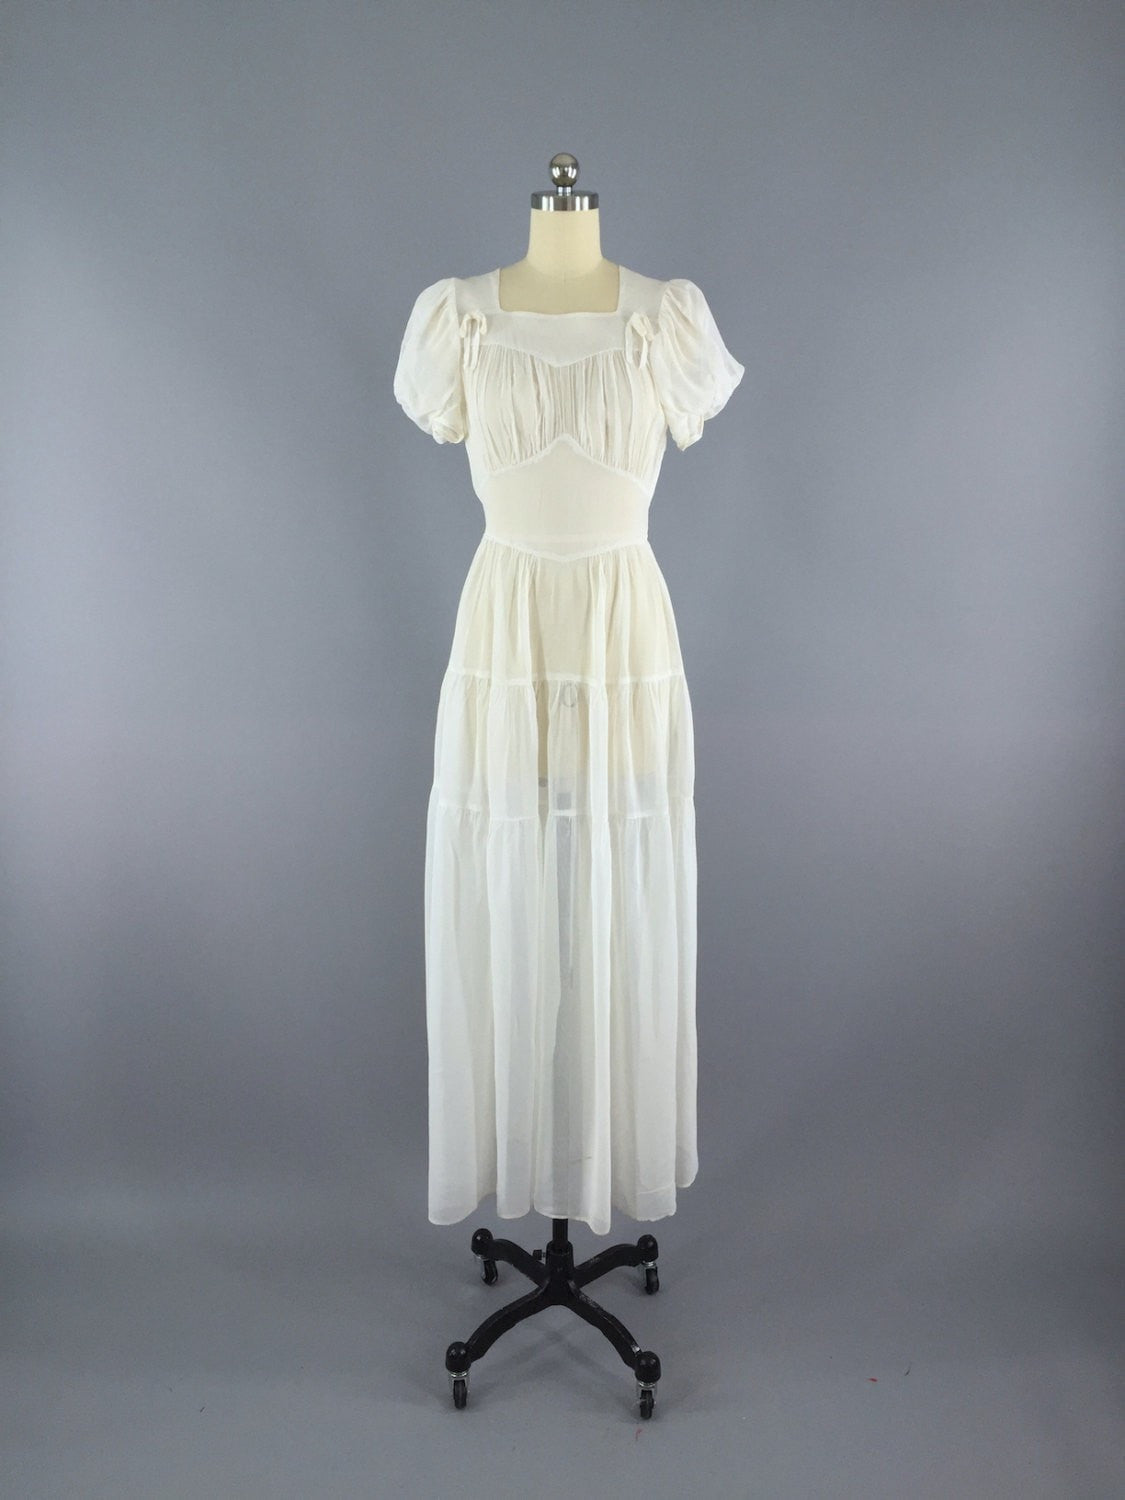 Vintage 1930s Dress / 30s Vintage Wedding Dress Dress ThisBlueBird